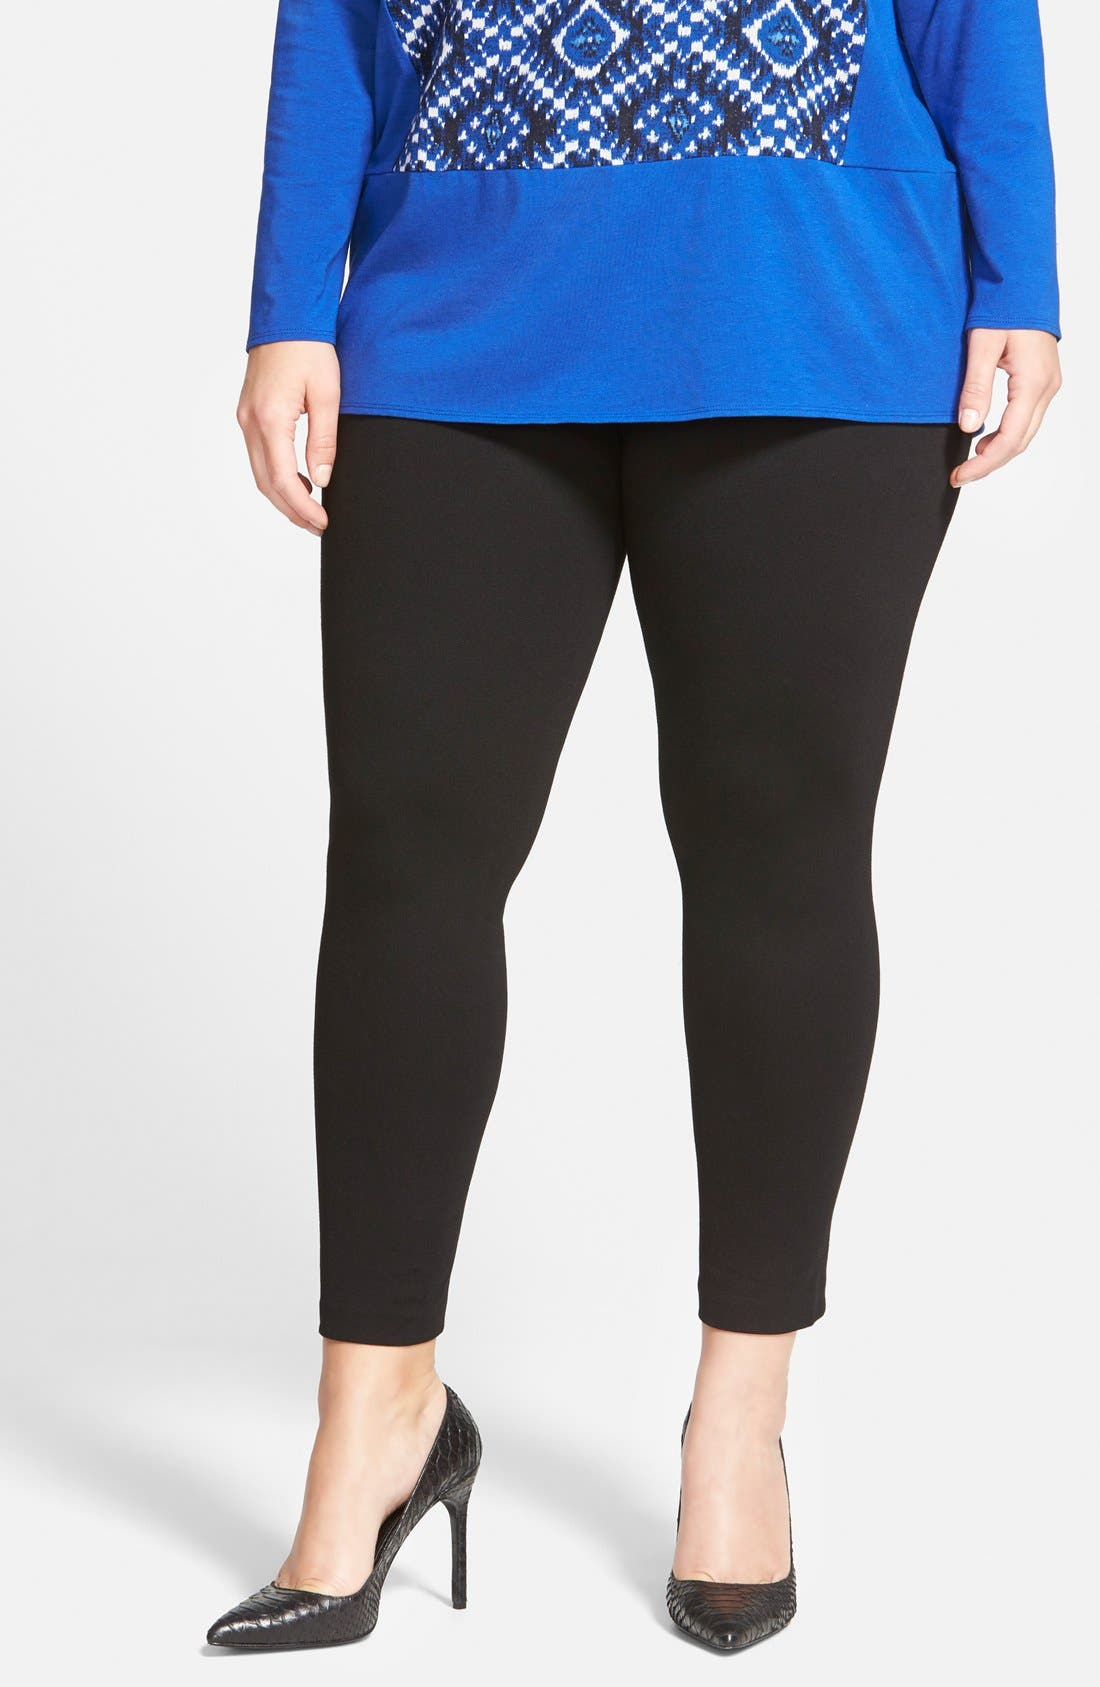 Two by Vince Camuto Leggings (Plus Size)